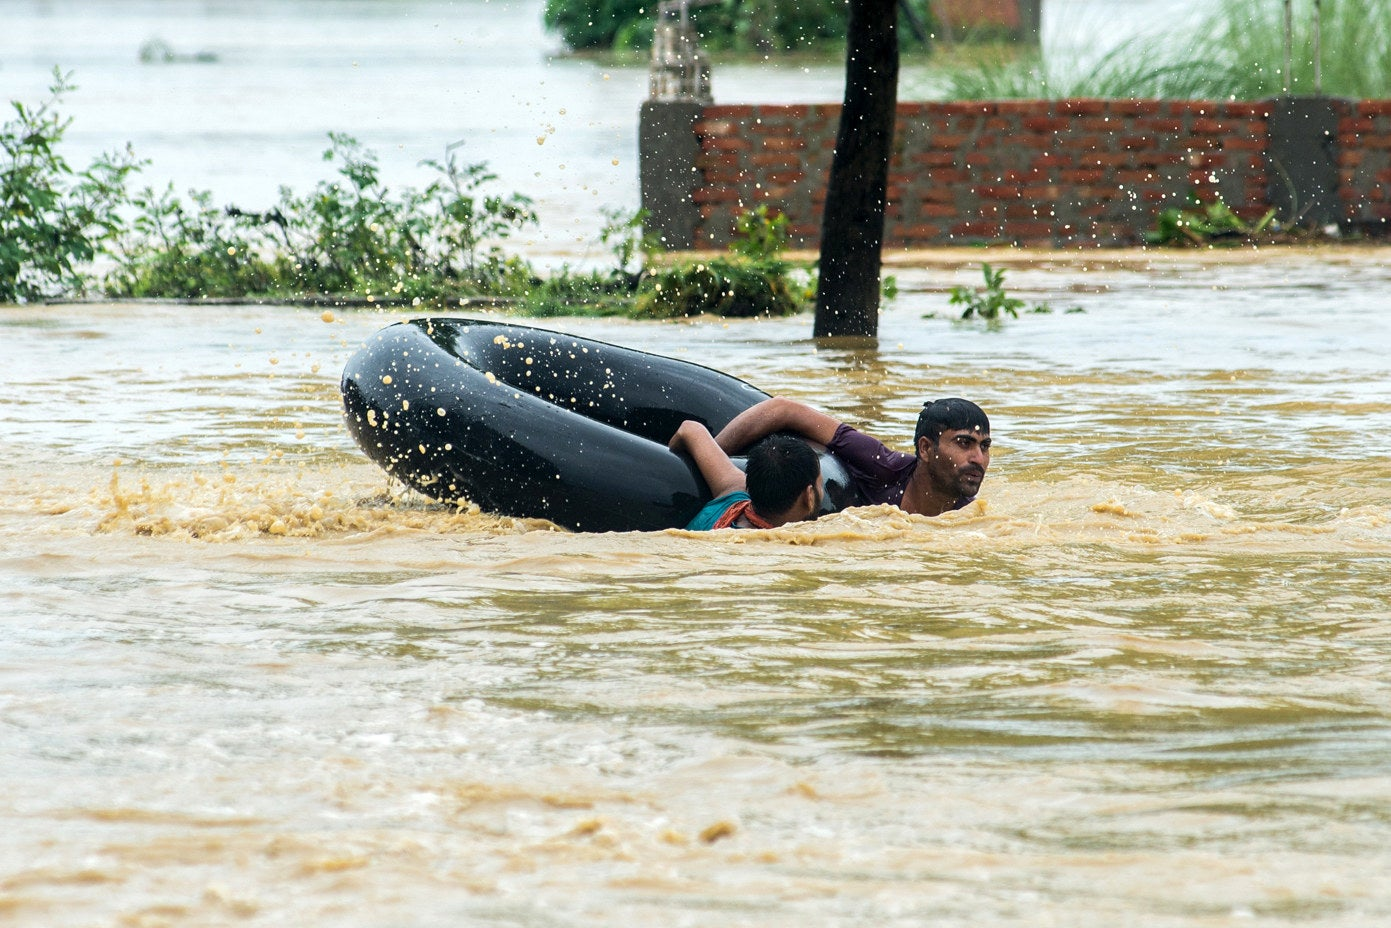 Nepalis swim with a rubber ring in a flooded area in Parsa district.